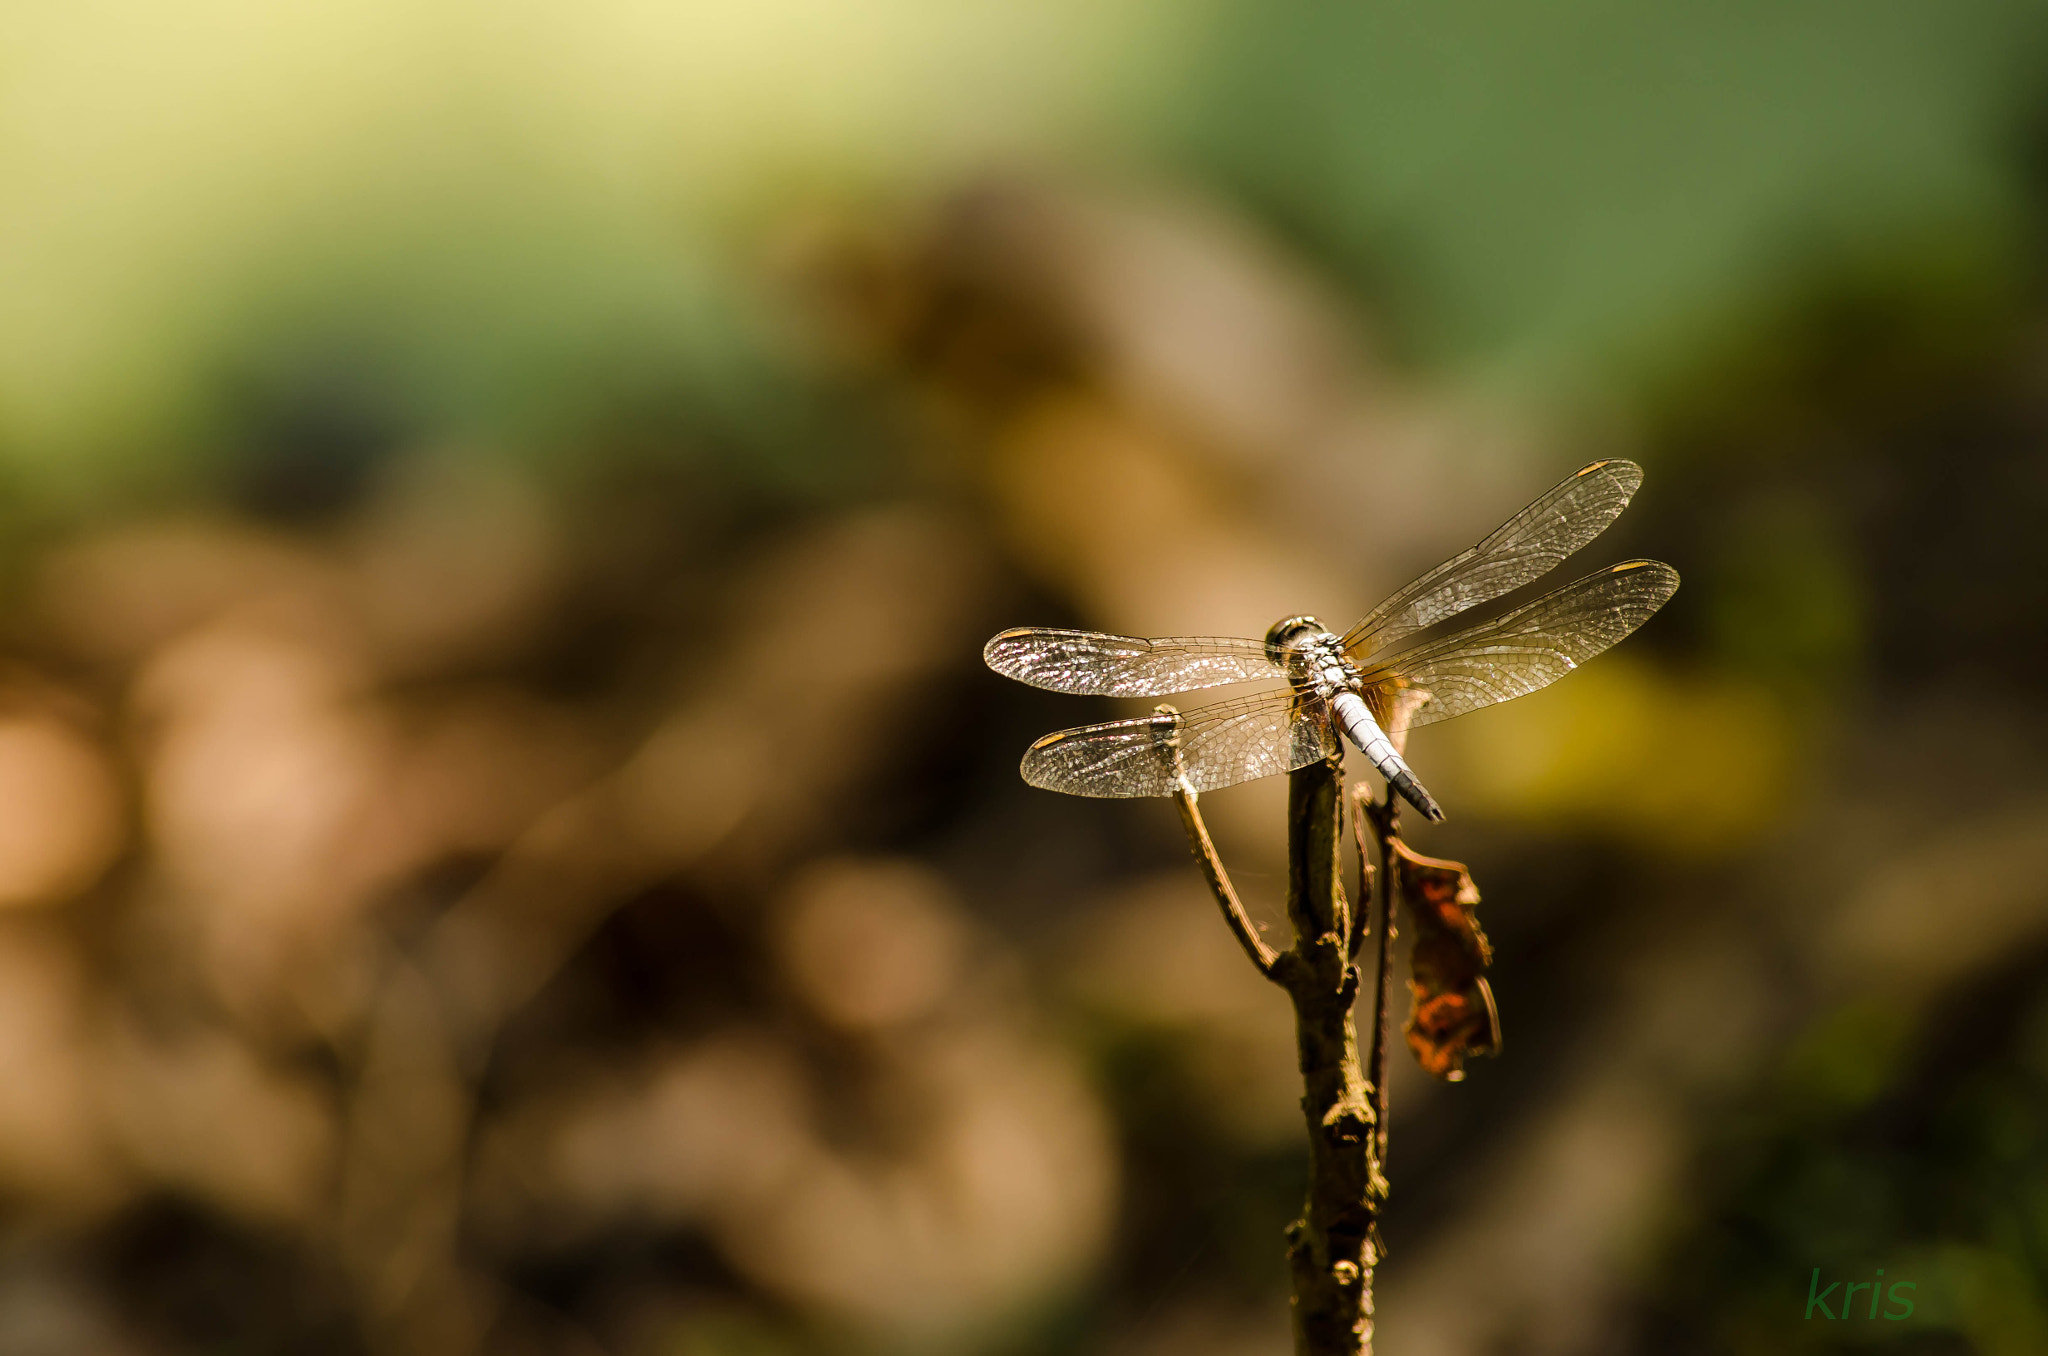 Photograph dragon fly  by Krishna Kumar on 500px